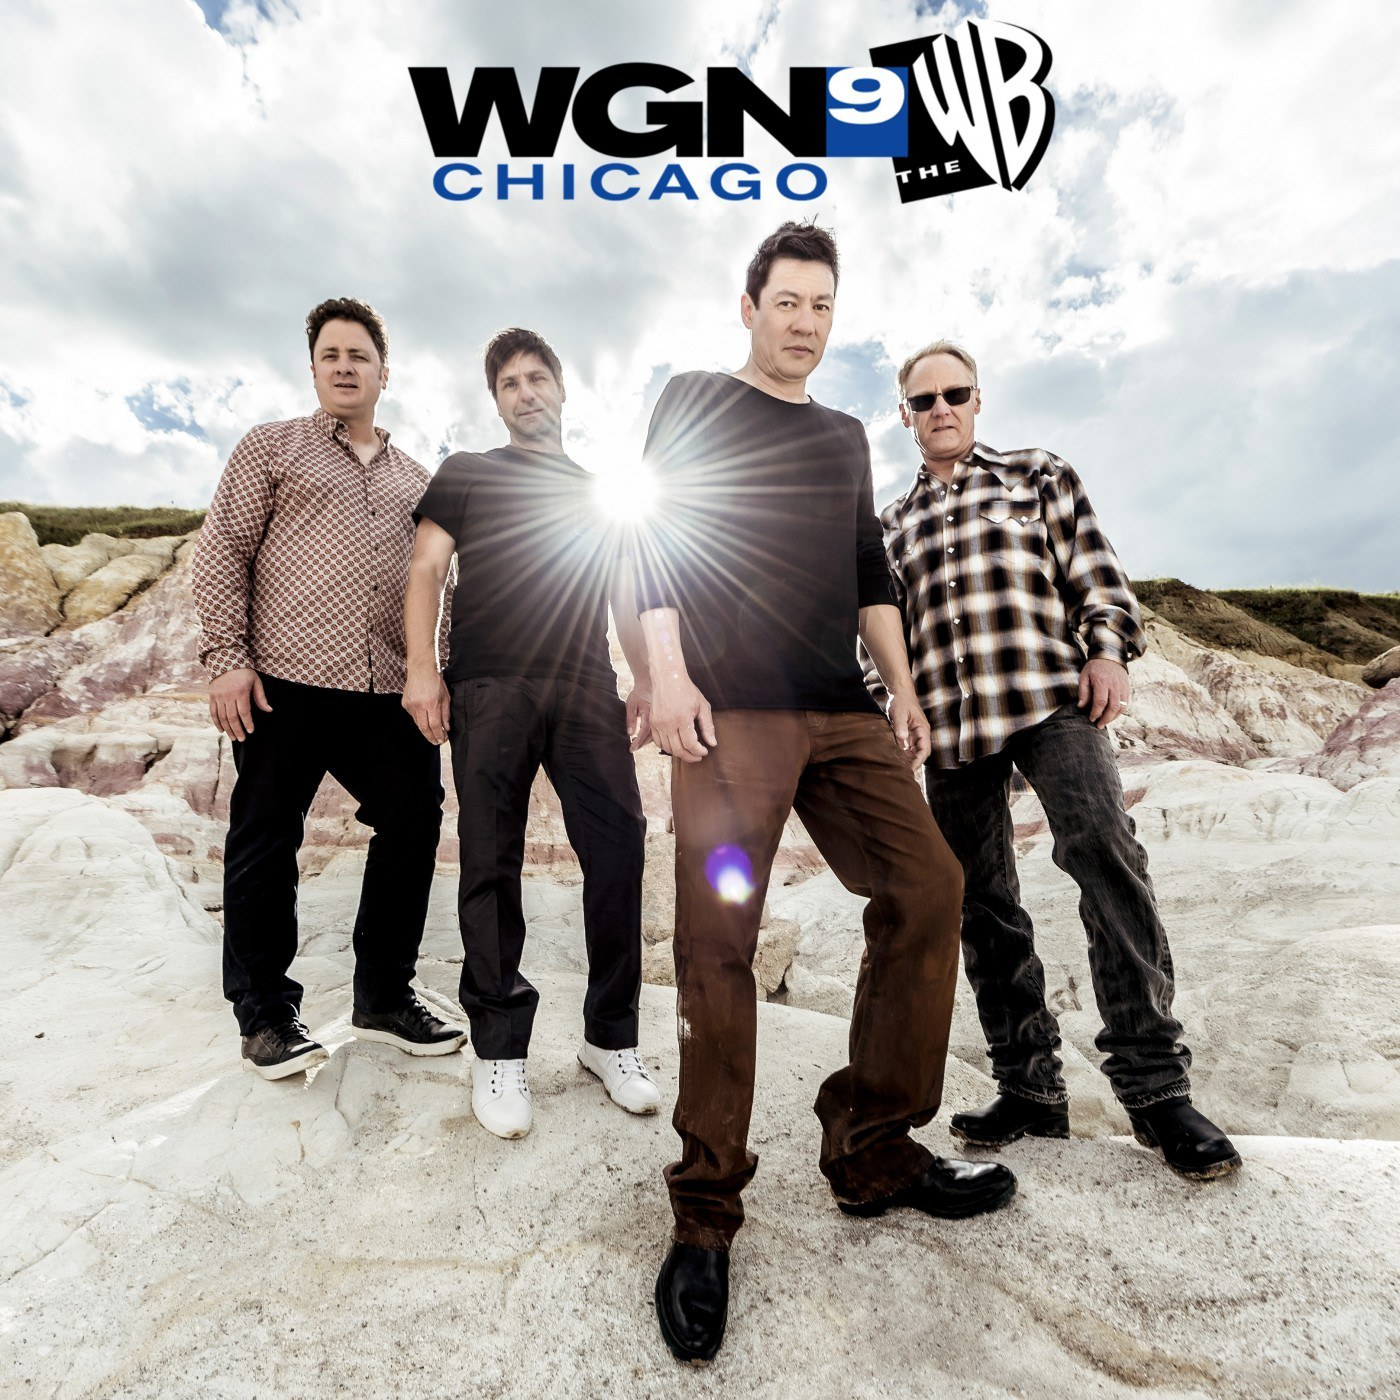 Big Head Todd LIVE on WGN News Chicago TOMORROW between 7am -10am (CST)!